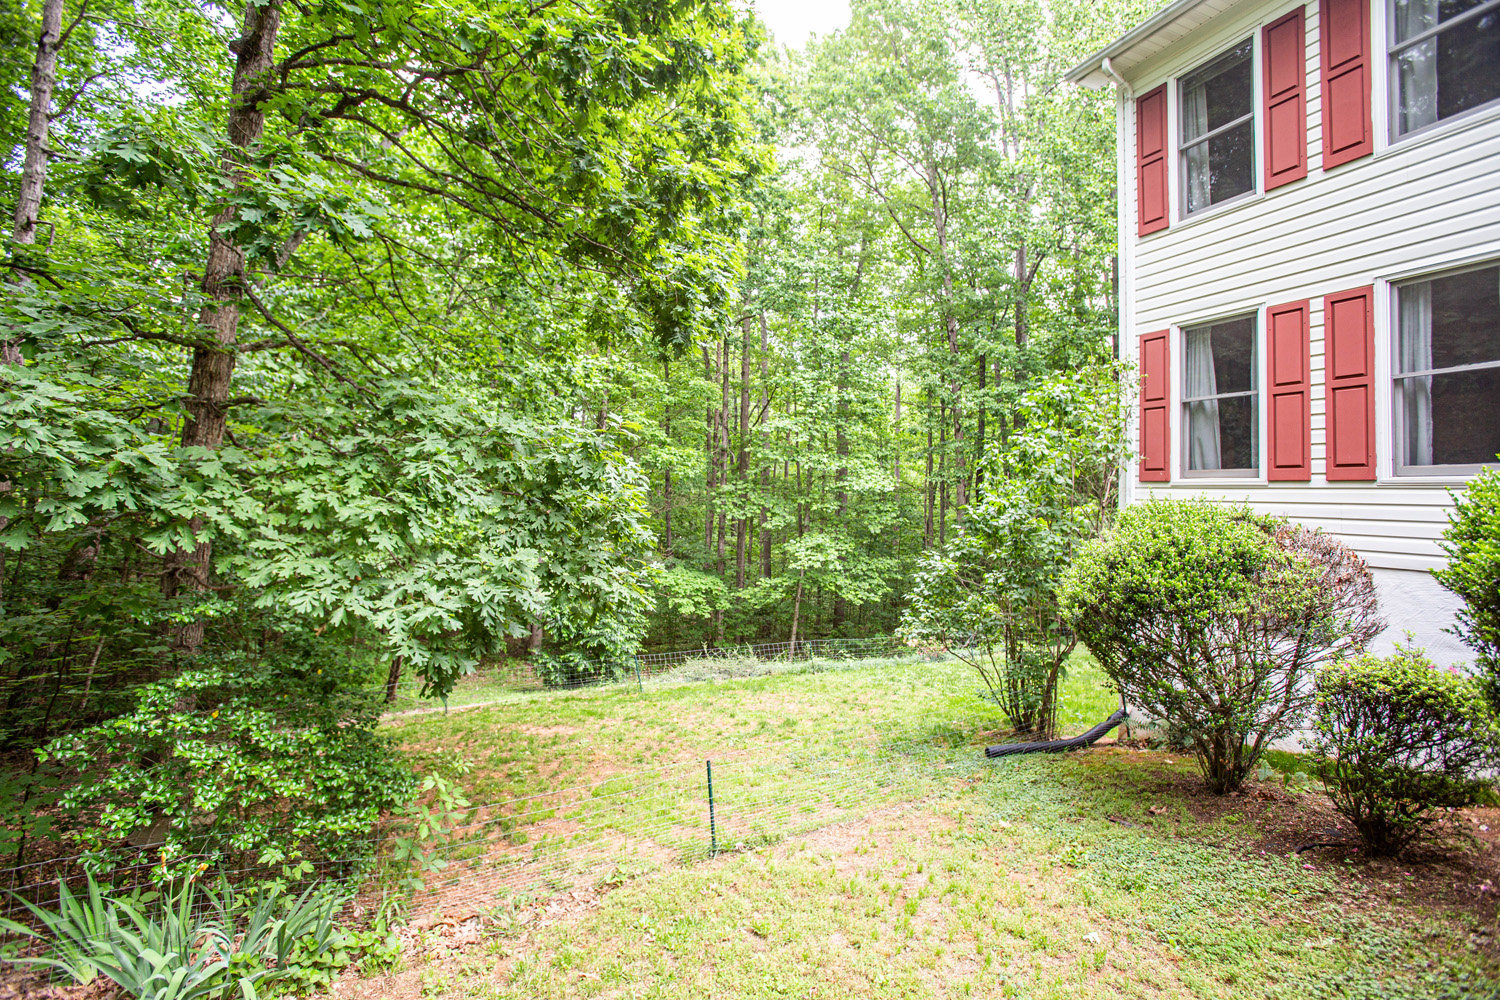 Image for 3 BR/2.5 BA Home on 1.3 +/- Acre Lot in Merrimac South Development--Culpeper County, VA